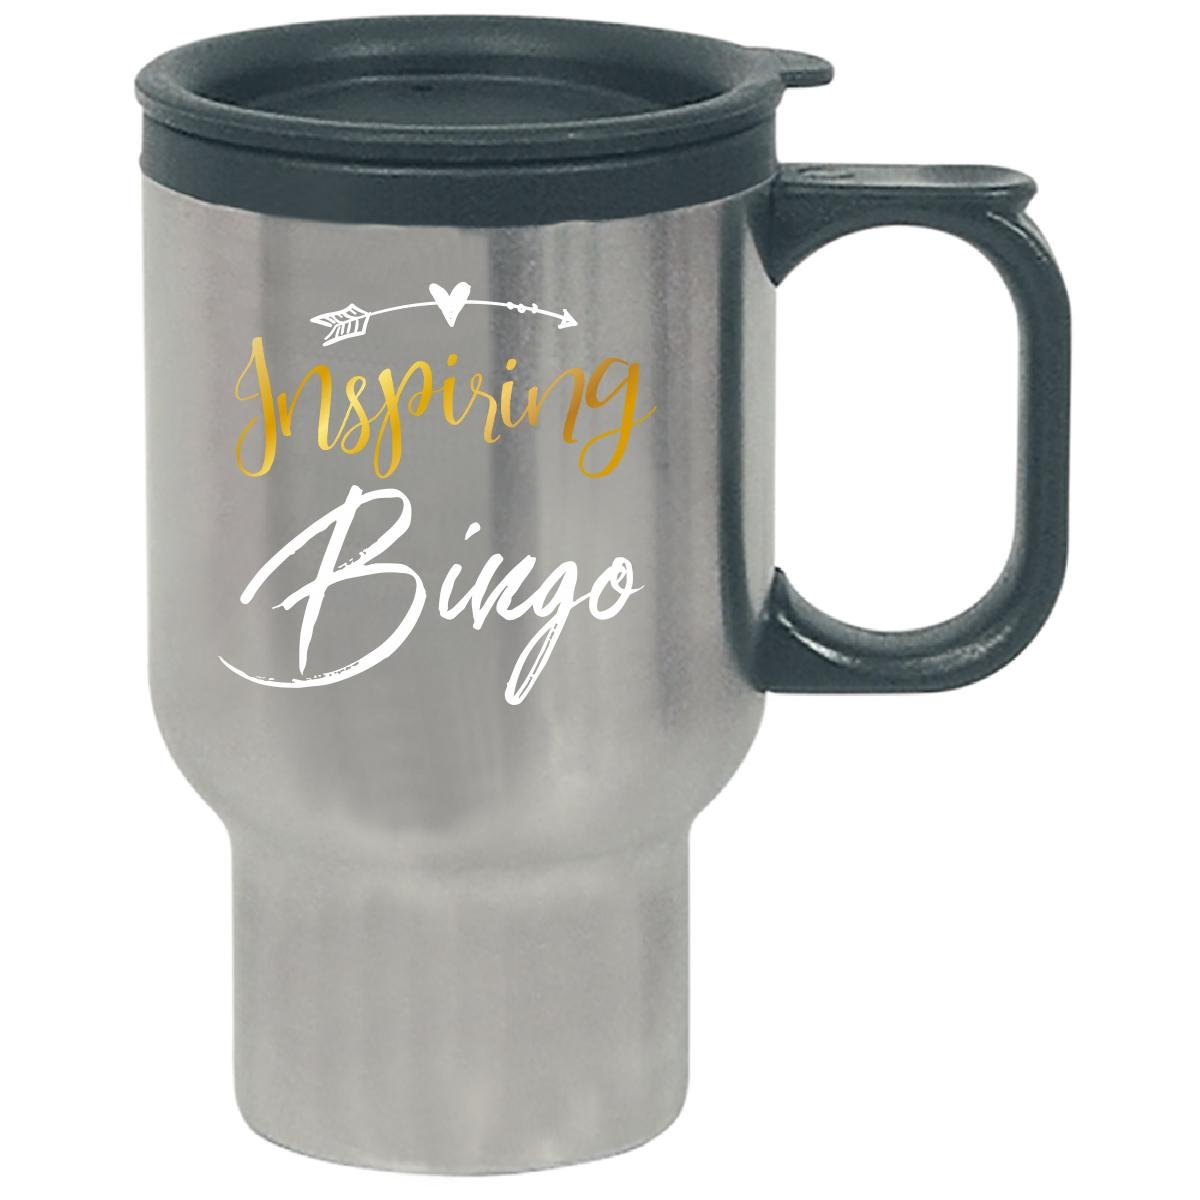 Inspiring Bingo Name Mothers Day Present Grandma - Travel Mug